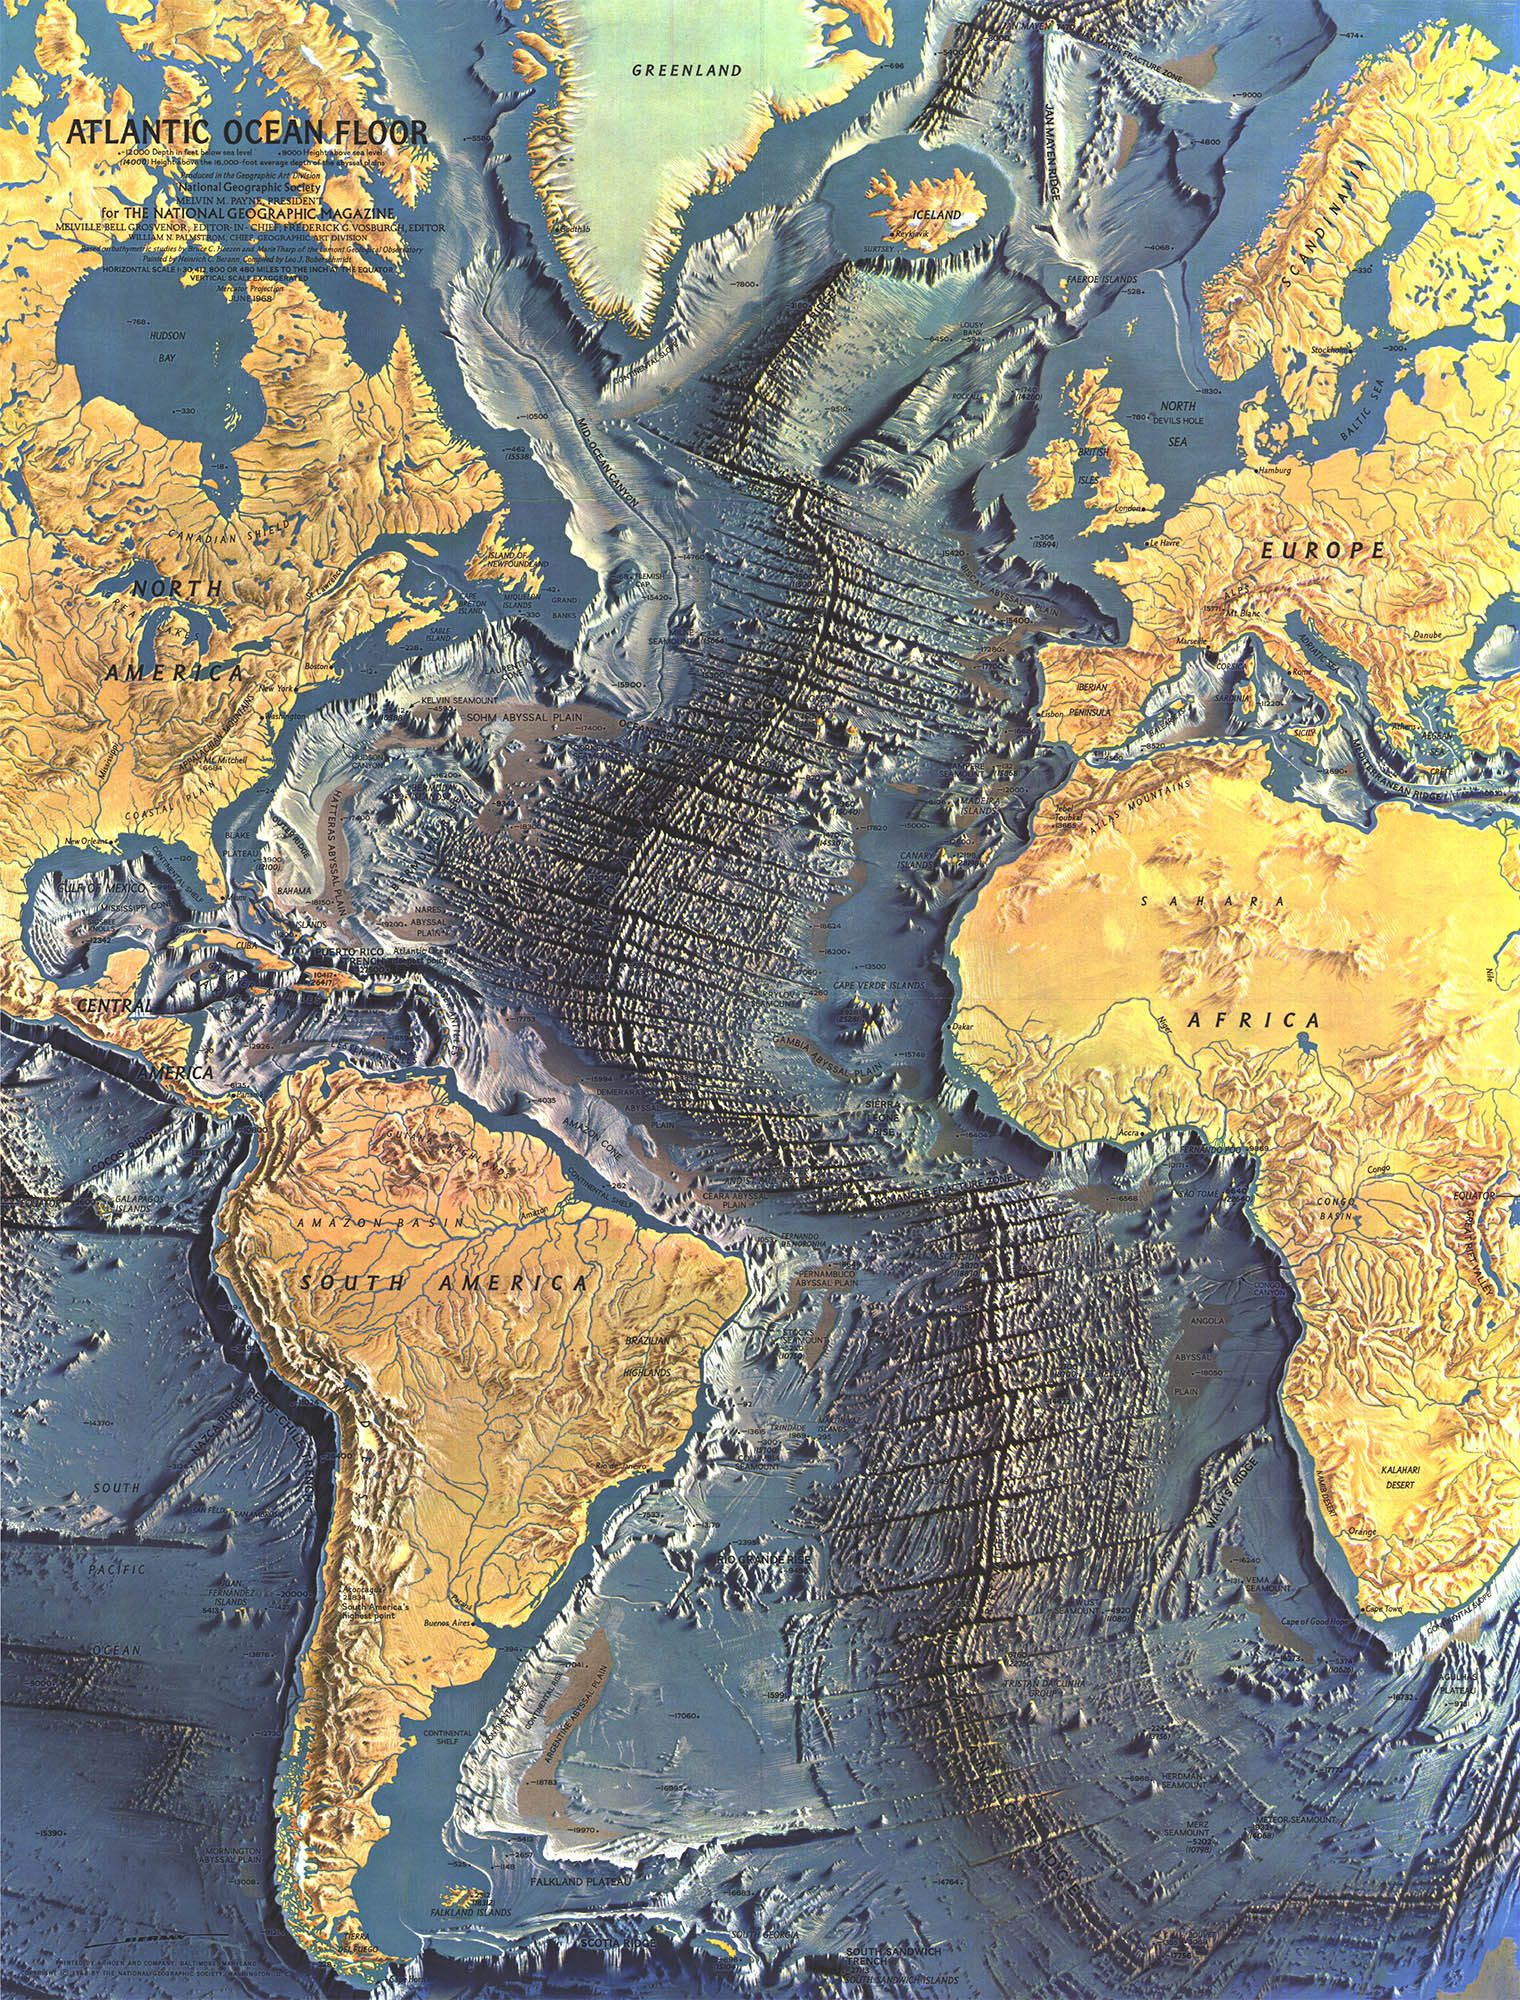 Atlantic Ocean Floor Map - atlantic ocean • mappery Totally see how Atlantic got ripped apart and center probably dunked under while sides went inoutward.